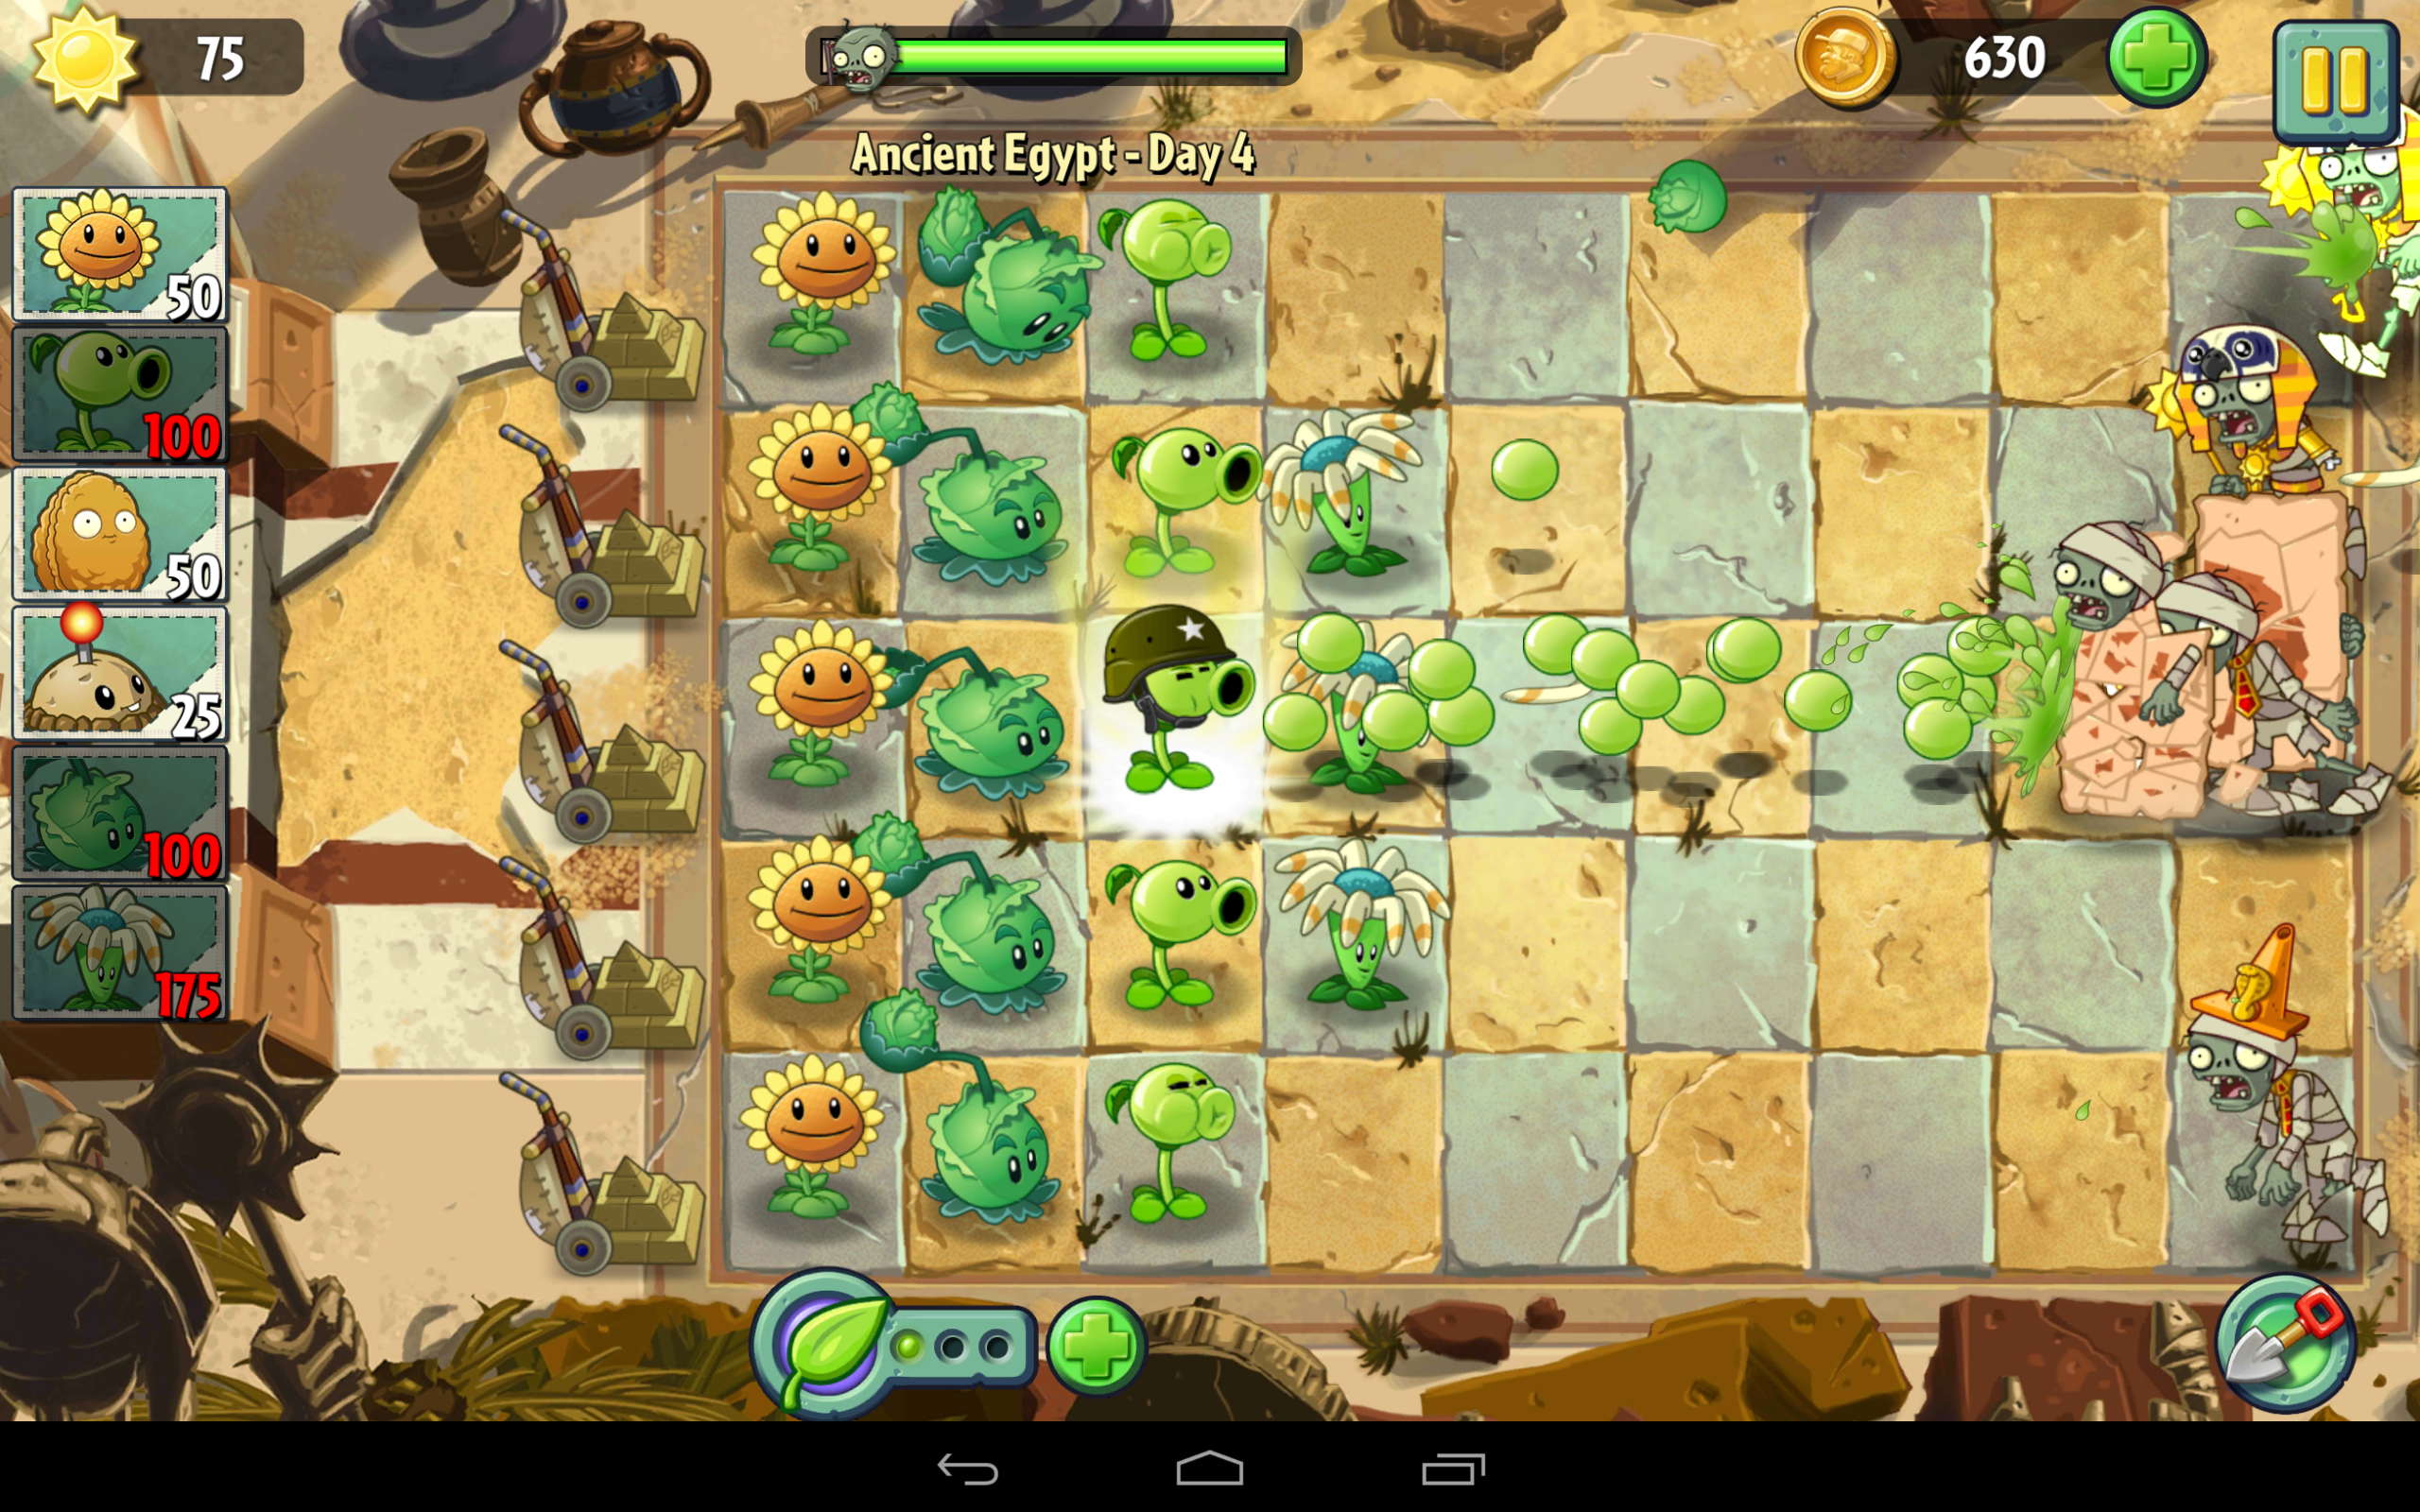 Google play app roundup plants vs zombies 2 power grid and dead in addition to the regular plant defense aspect plants vs zombies 2 includes a few new game mechanics zombies will occasionally drop plant food voltagebd Gallery